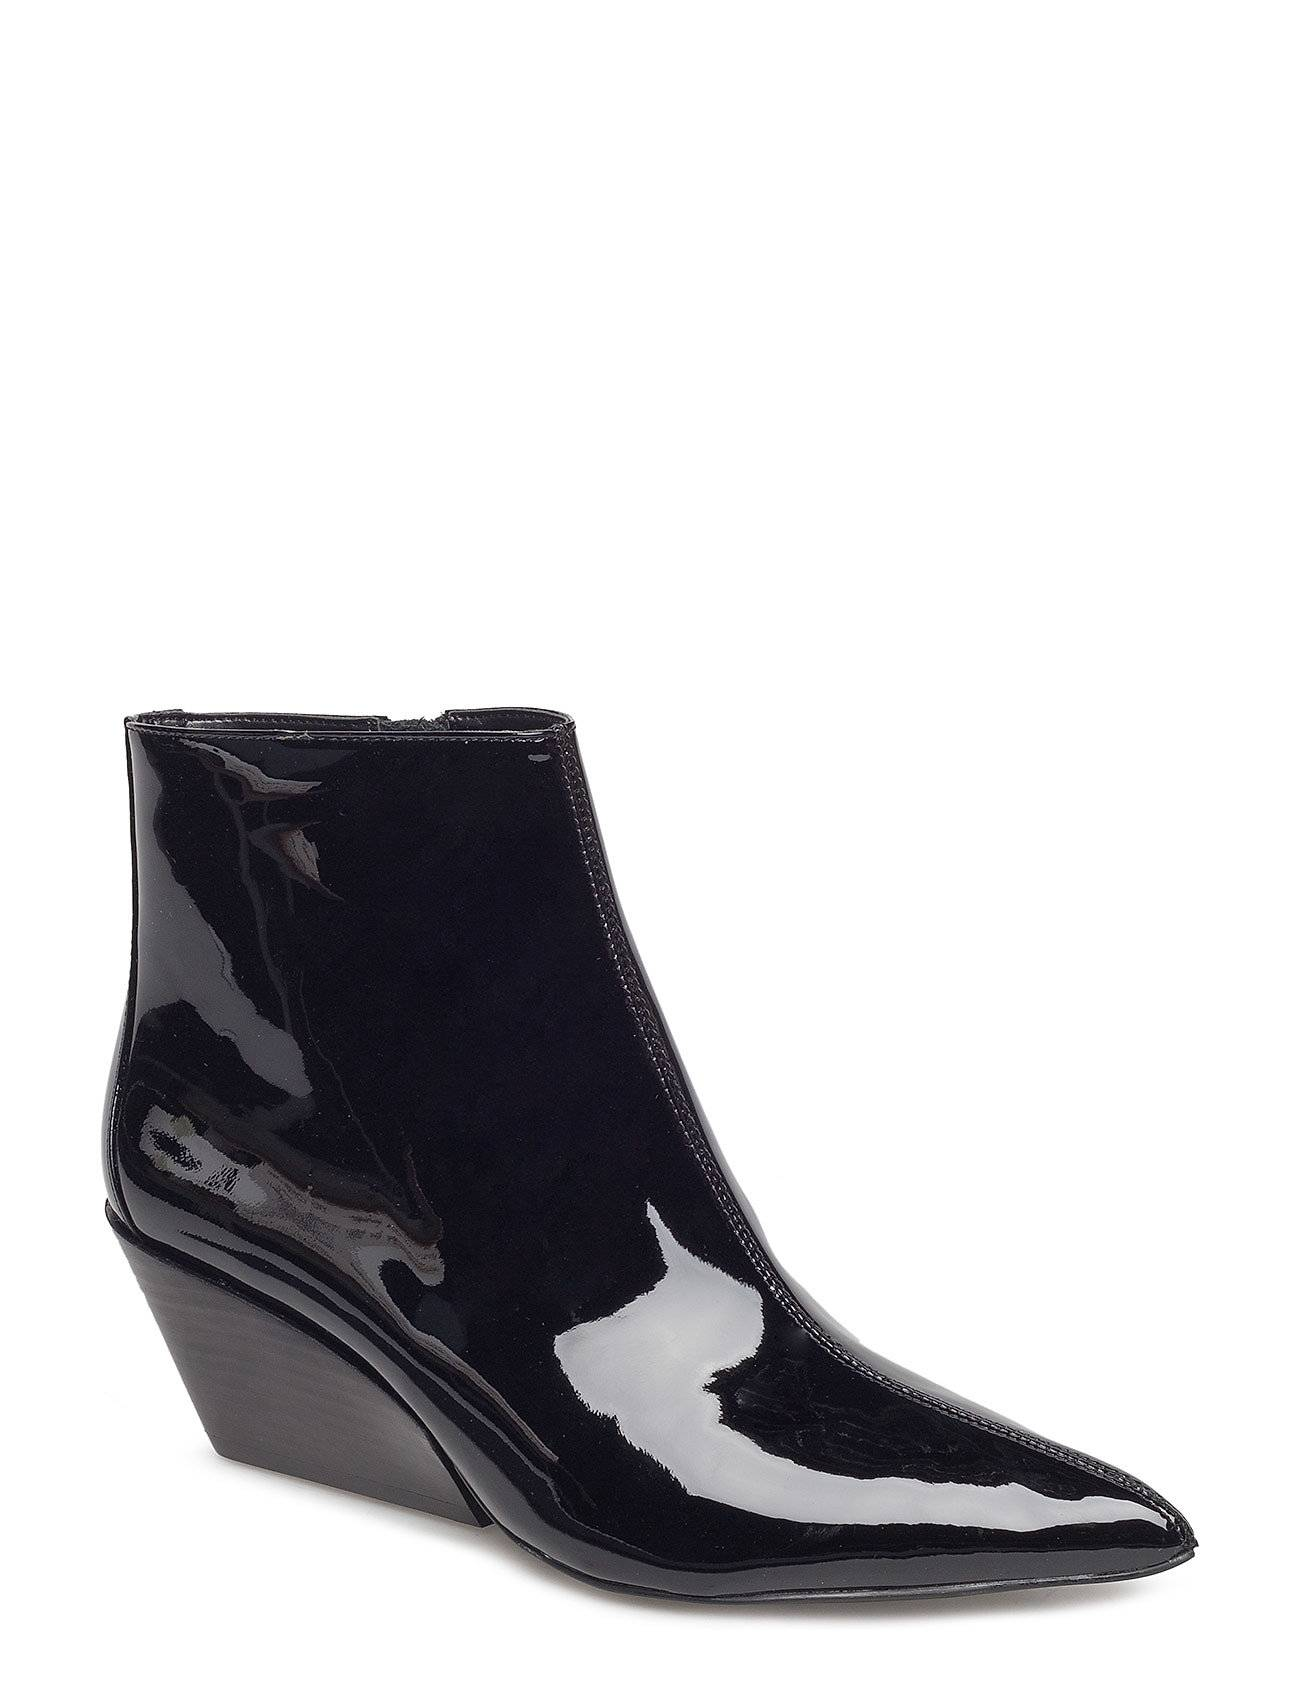 Calvin Freda Patent Leather